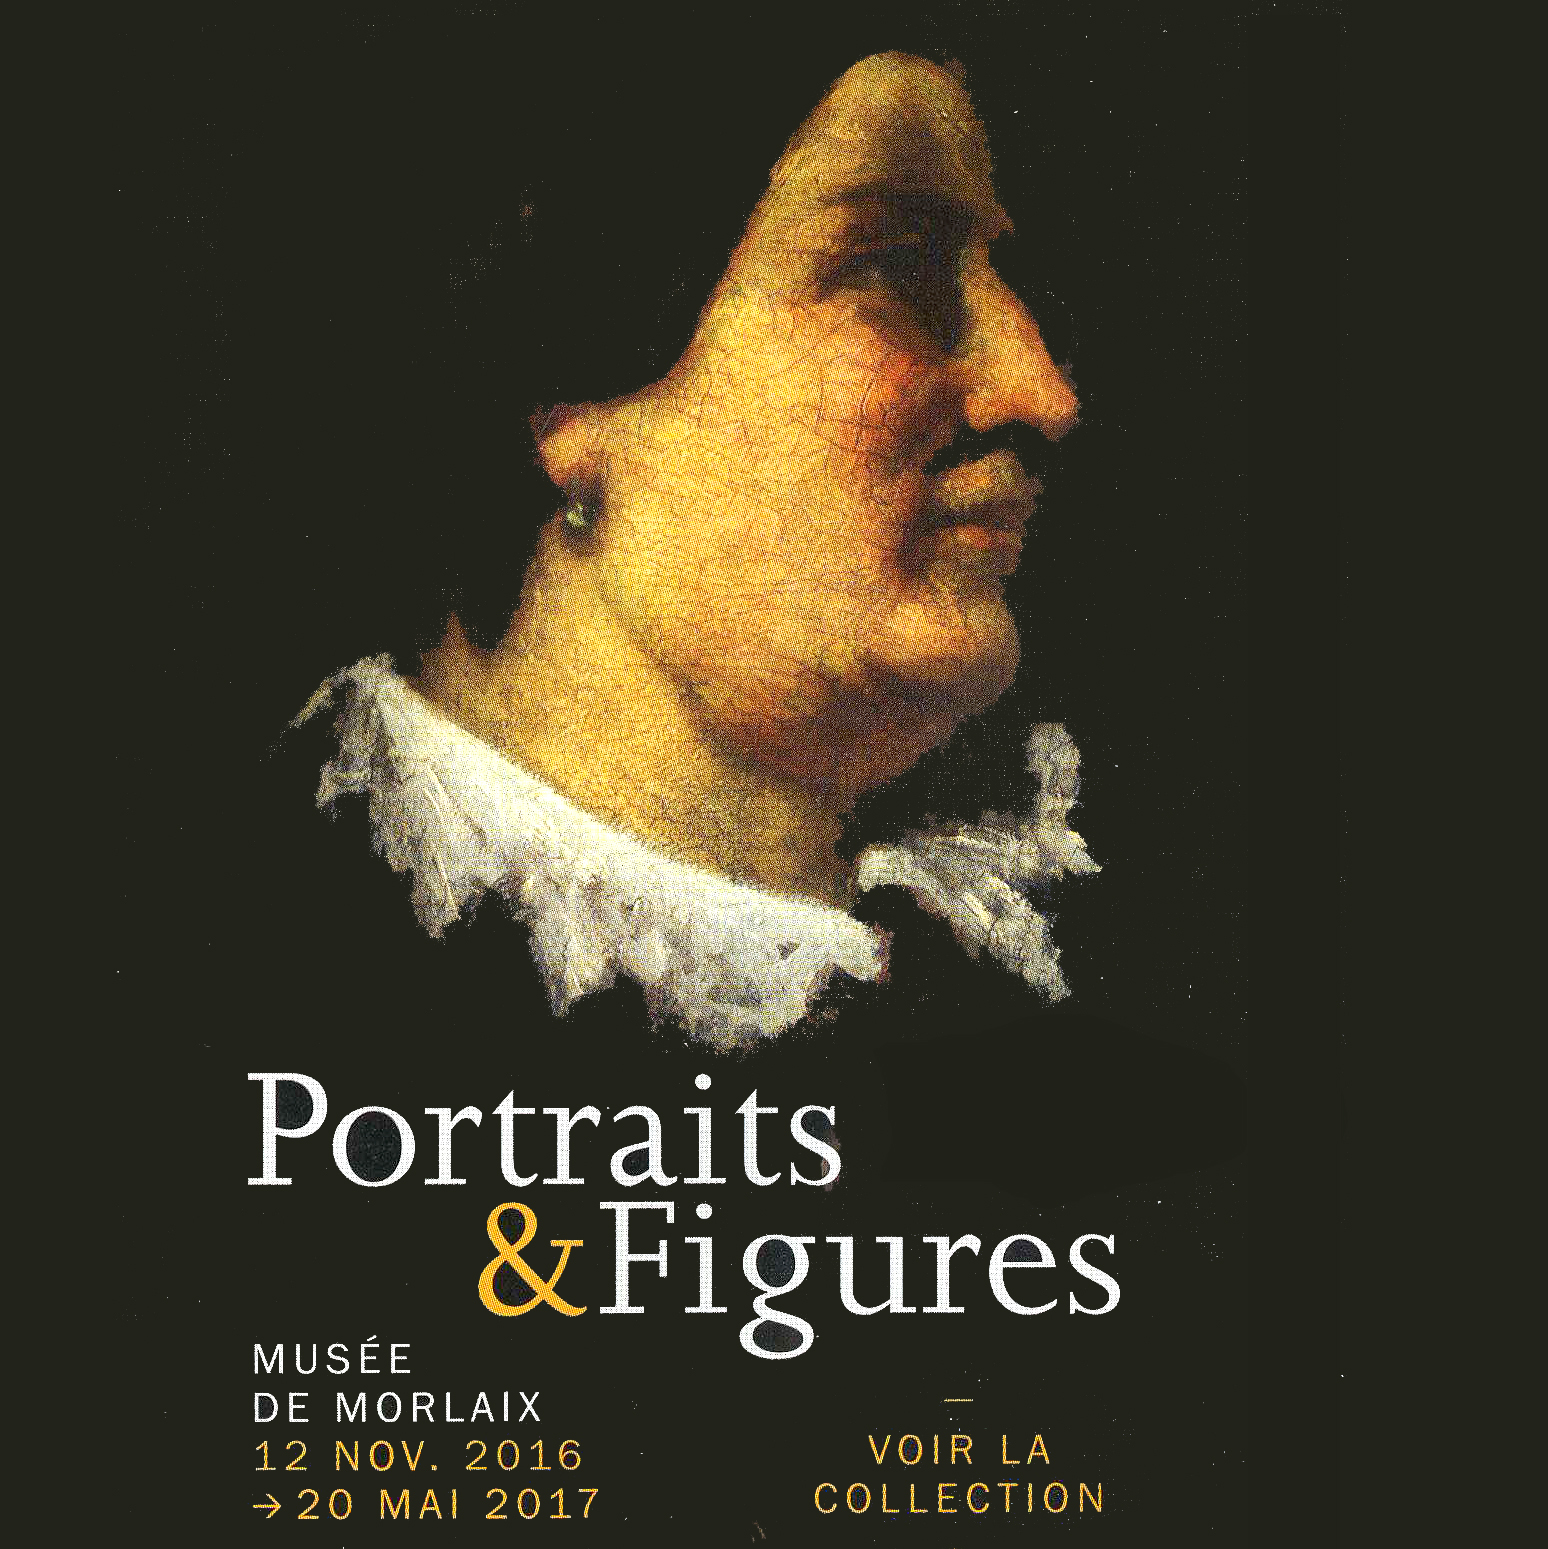 Portraits et figures